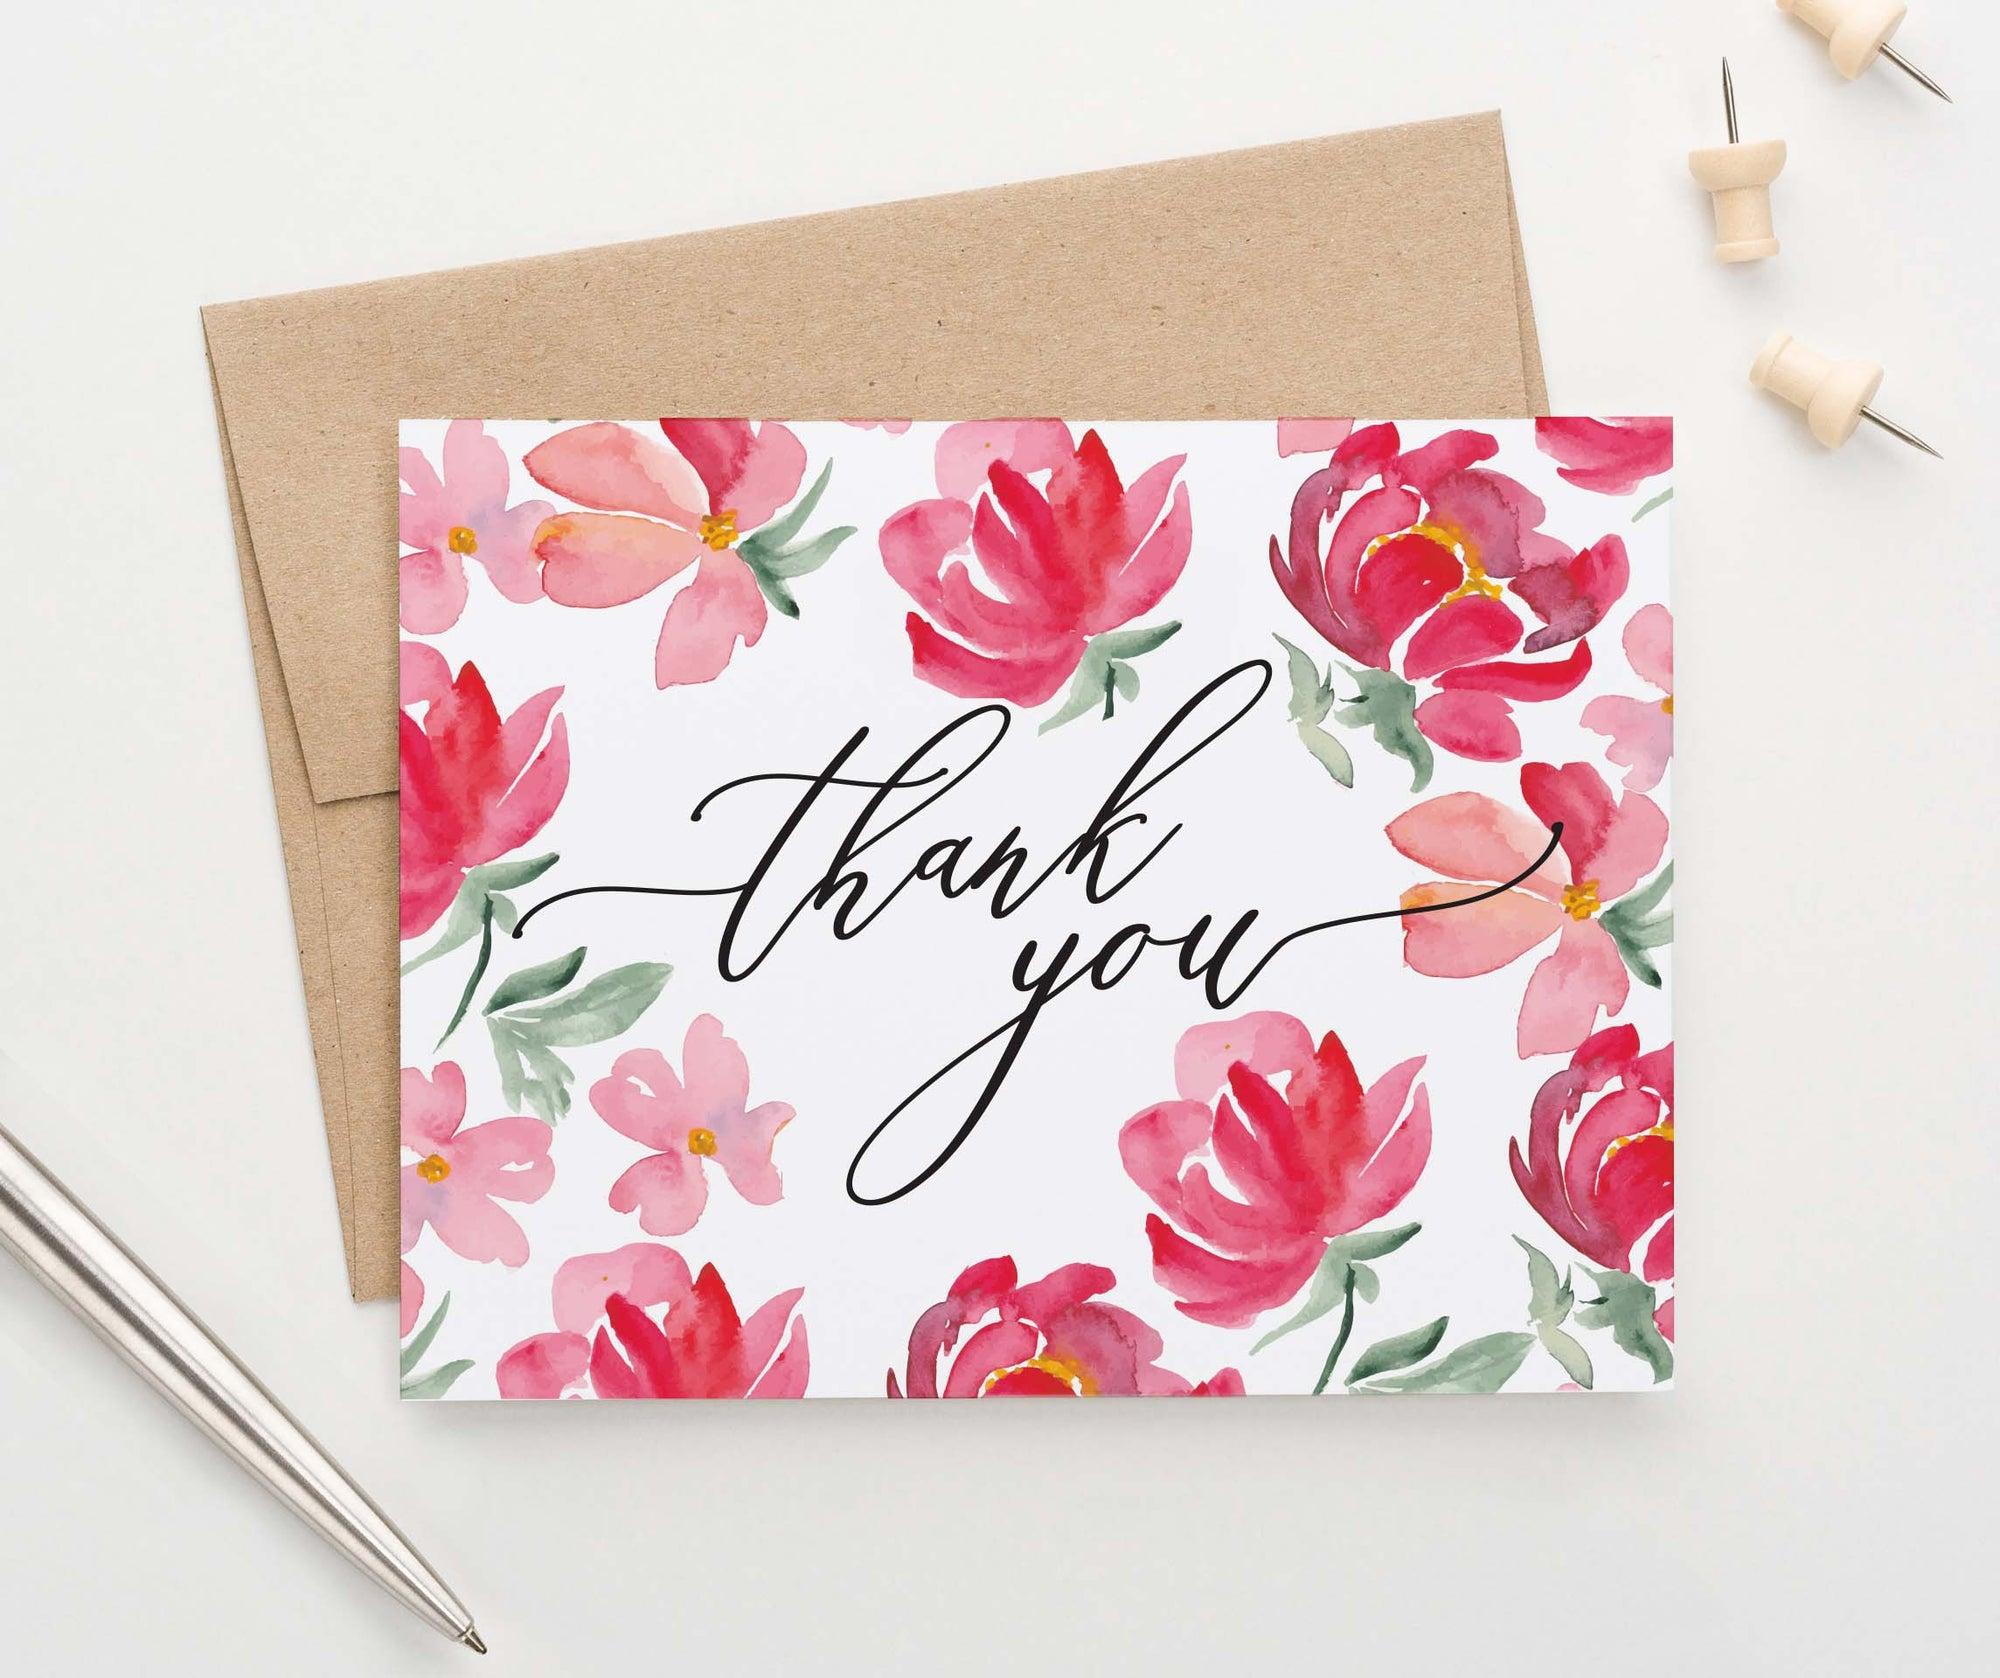 TY059 red floral folded thank you notes for women flowers script